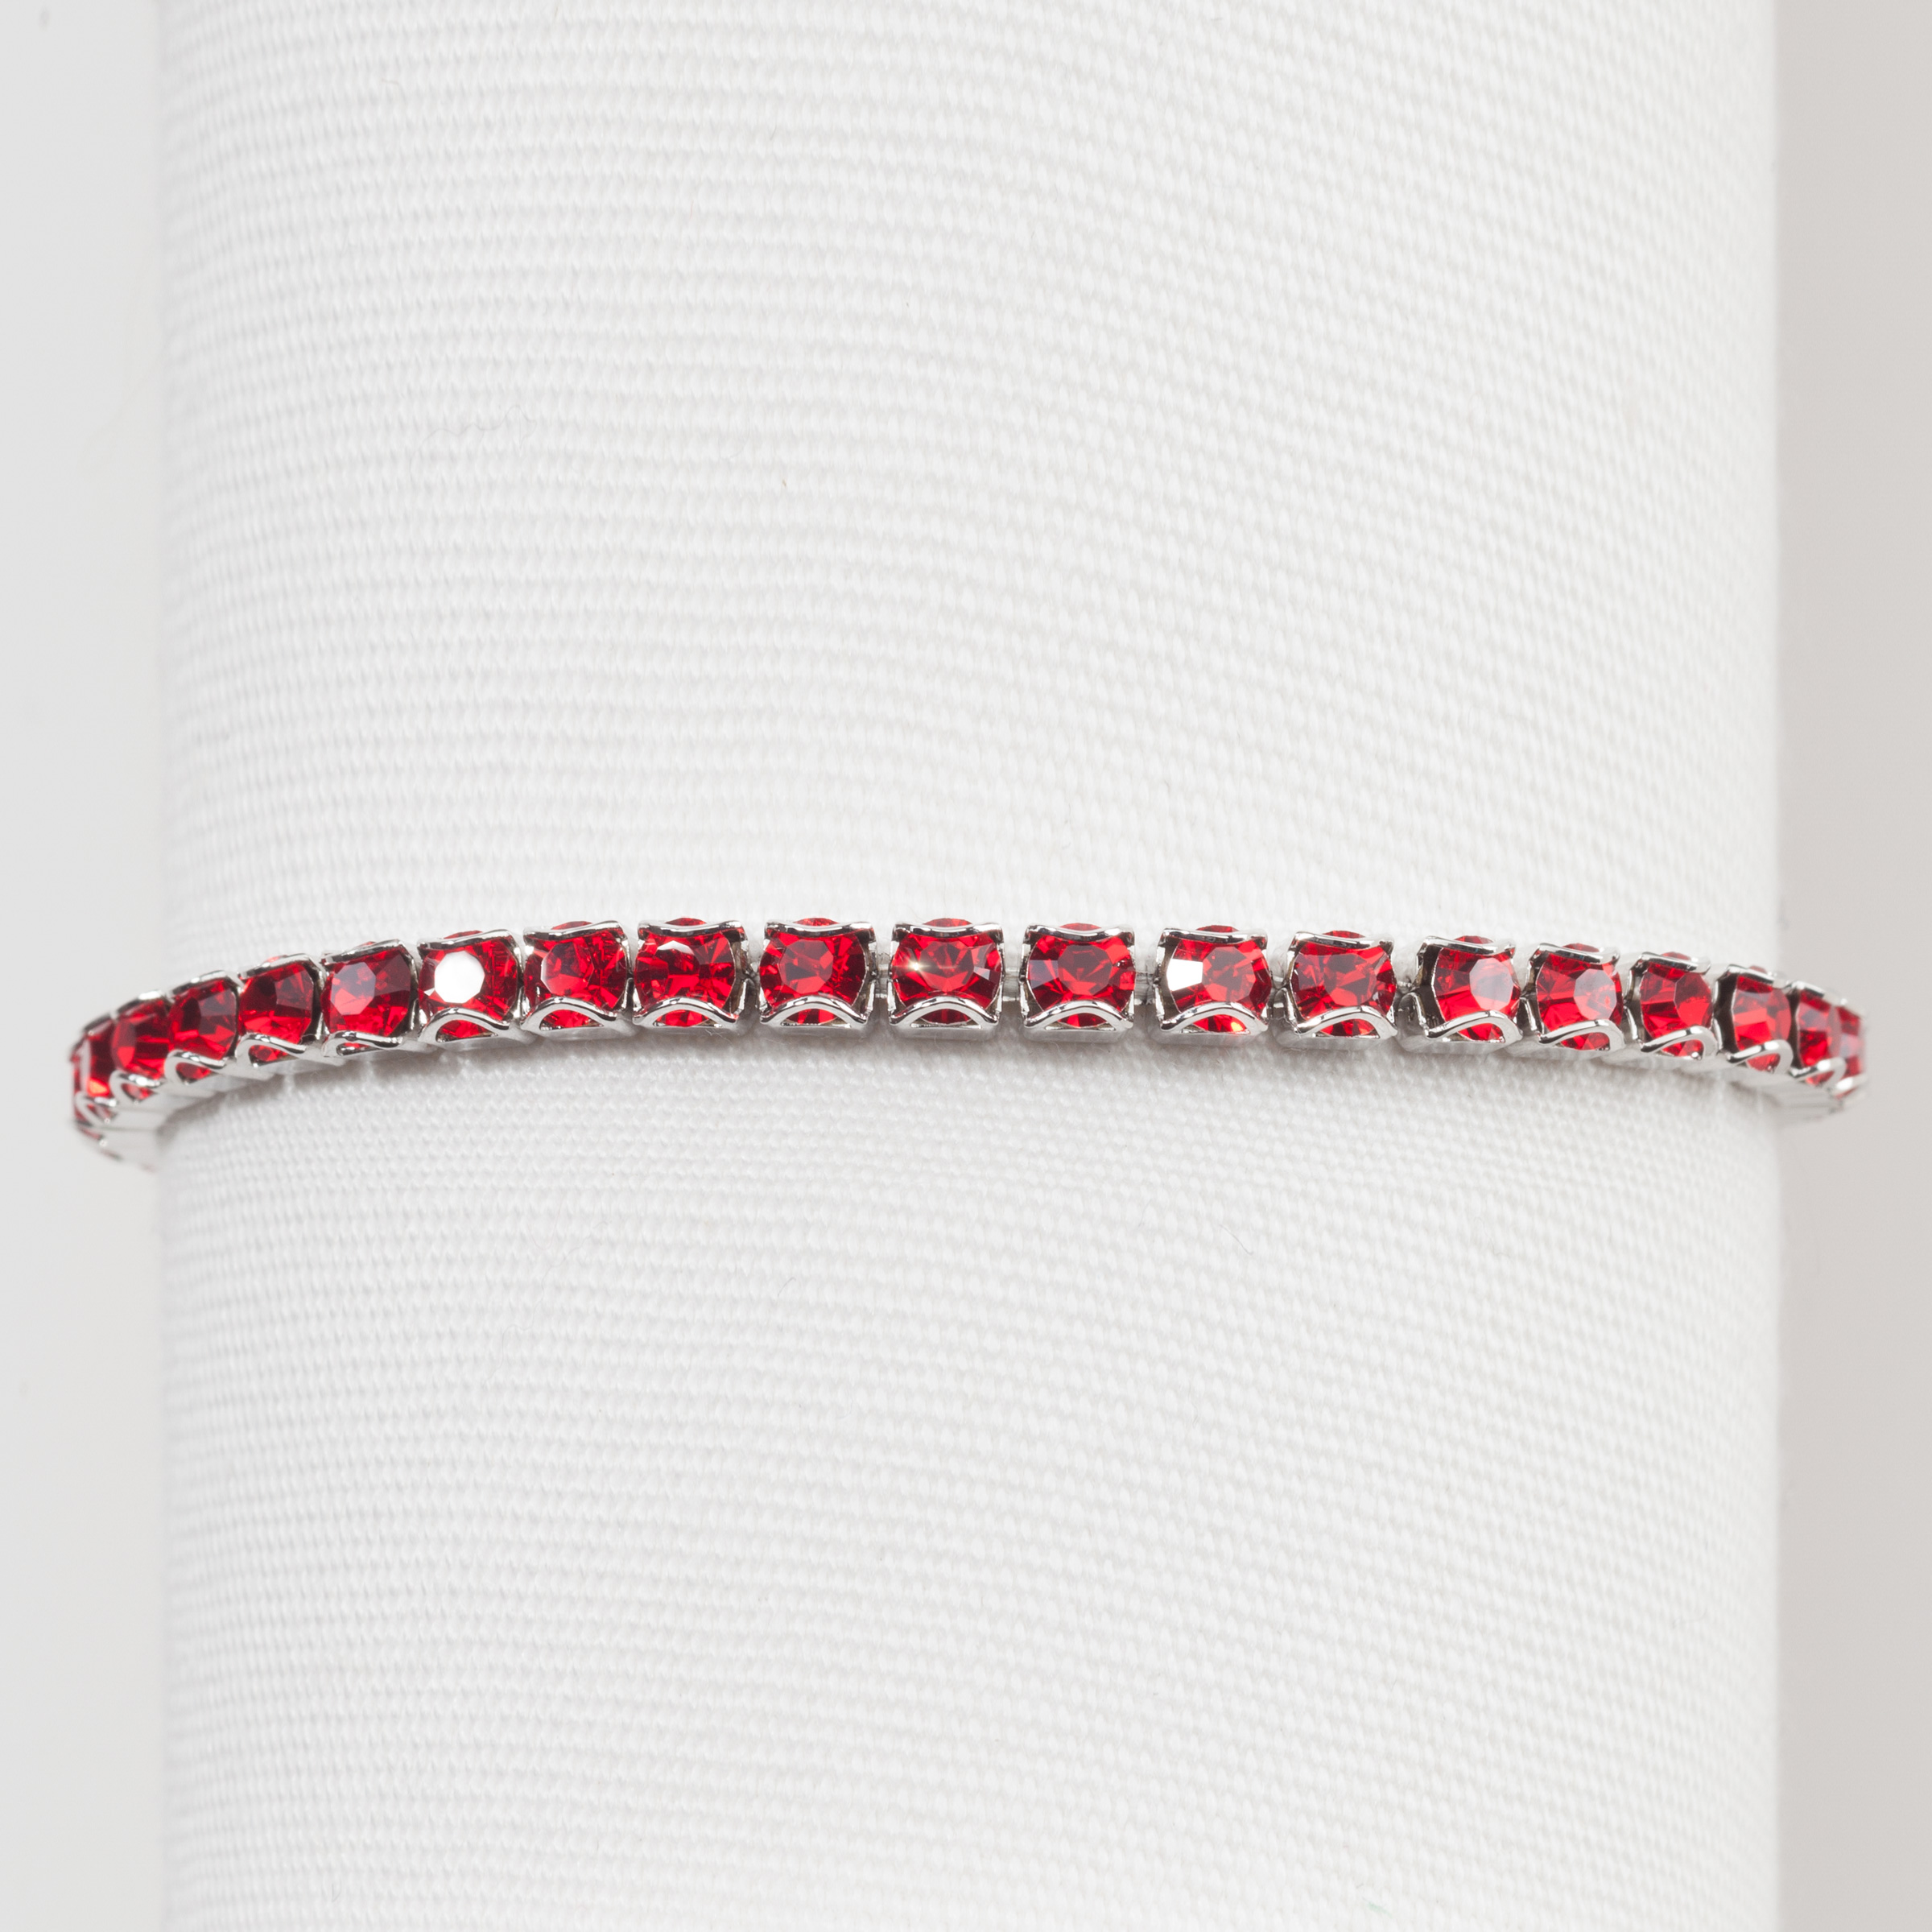 cf35ed24ccfb7 Touchstone Crystal by Swarovski – Jewelry Home Parties